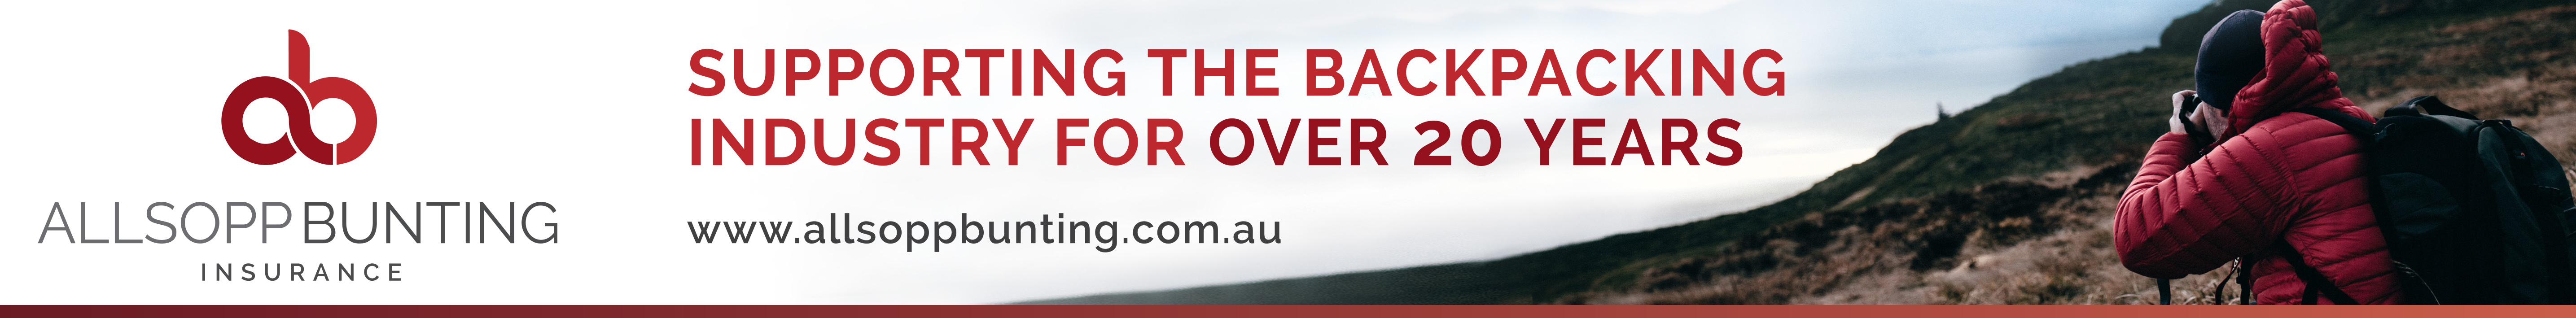 Guest Post: Backpacker tax changes to hurt tourism and